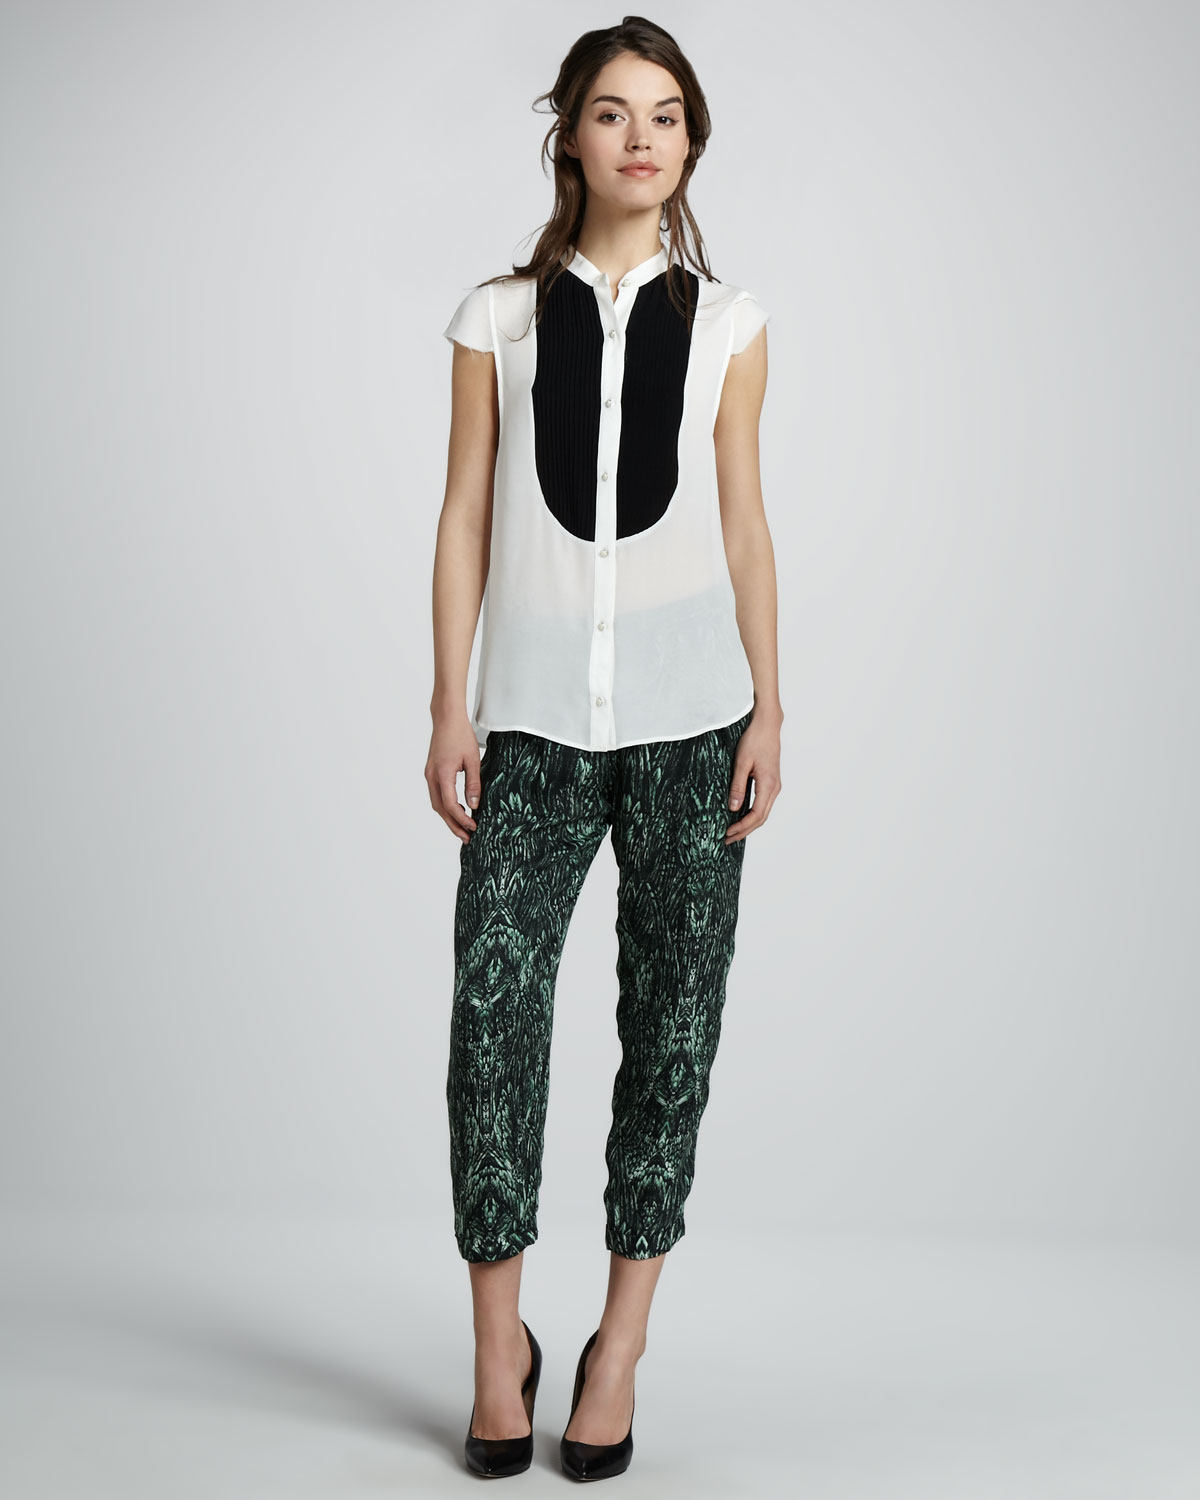 49BU Haute Hippie Cap Sleeve Button Down and Printed Cropped Trousers